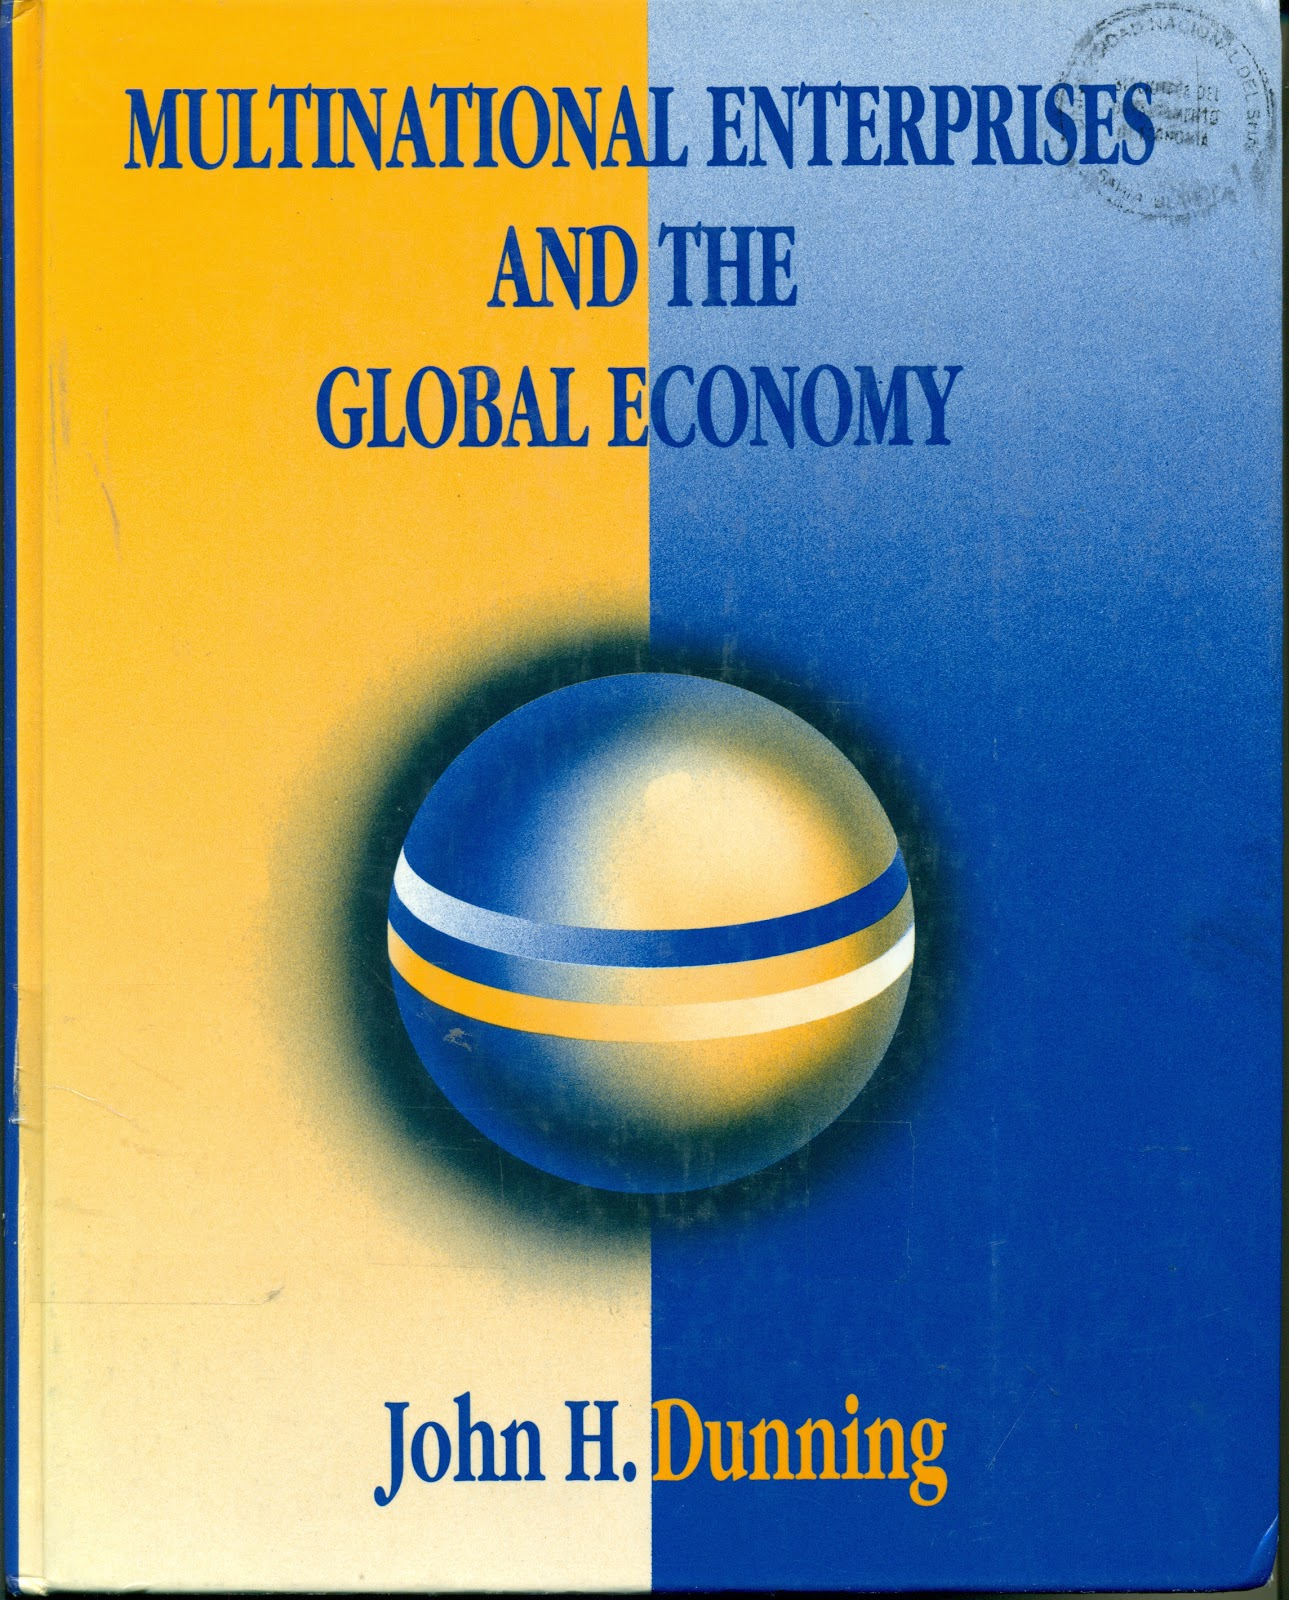 globalization and the multinational enterprise Globalization, increased interconnectedness, and deep integration resulted in significant increases in trade and fdi from 1989 through 2008 the recession marked the end of that trend and the rise of a broad-based opposition that has economic, social, and political components this article explores.